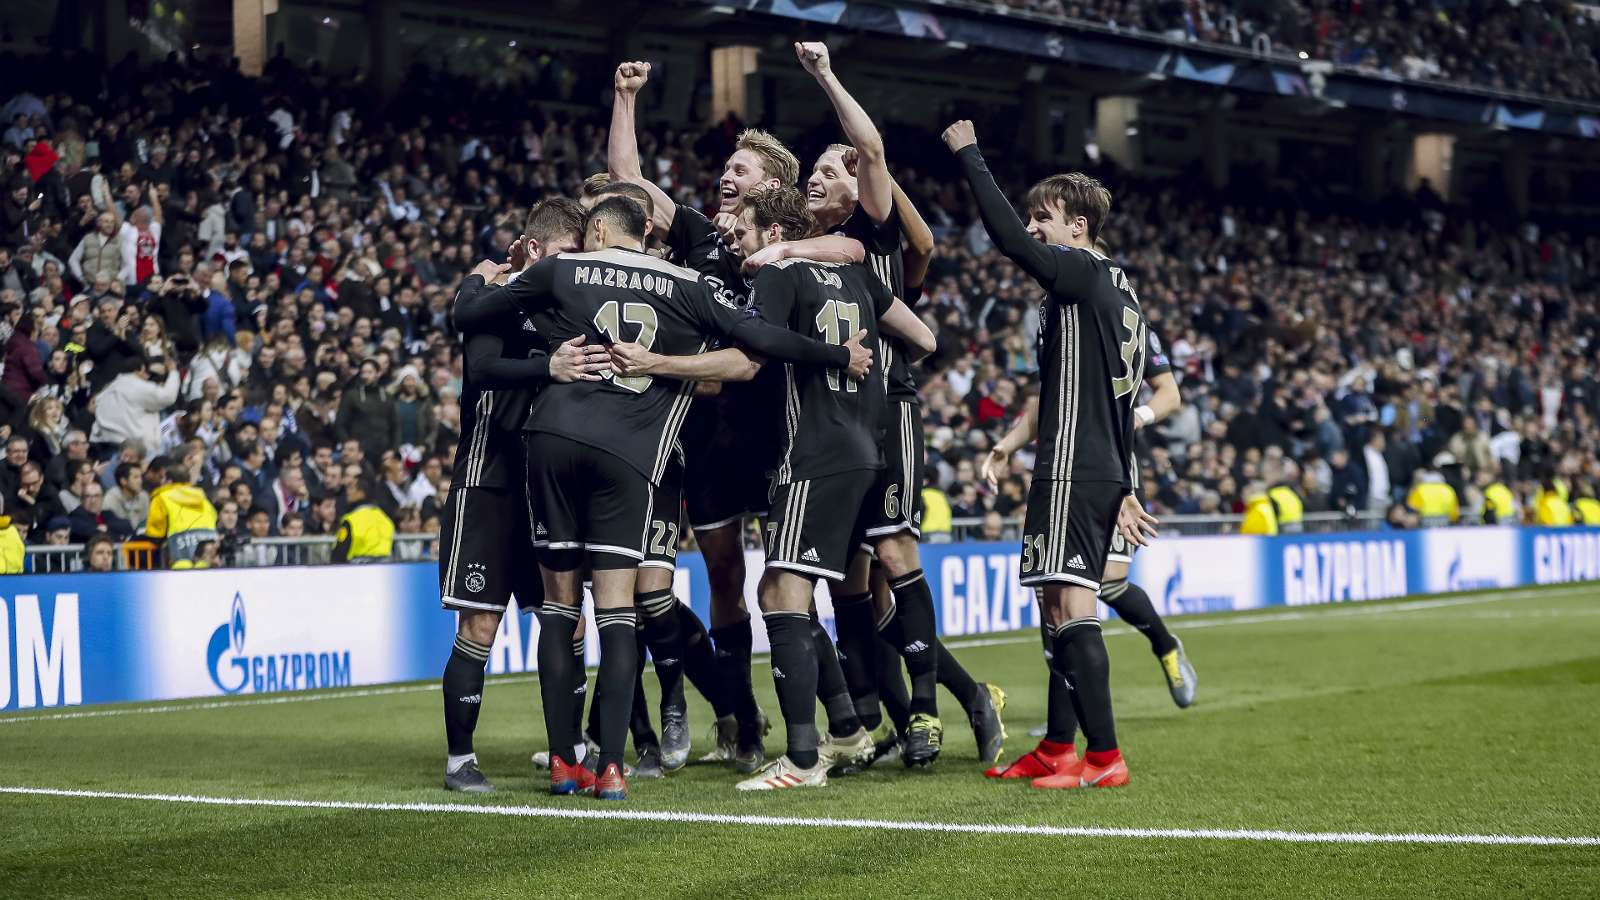 Real Madrid-Ajax Amsterdam (1-4) : Le triple champion d'Europe en titre sort par la petite porte